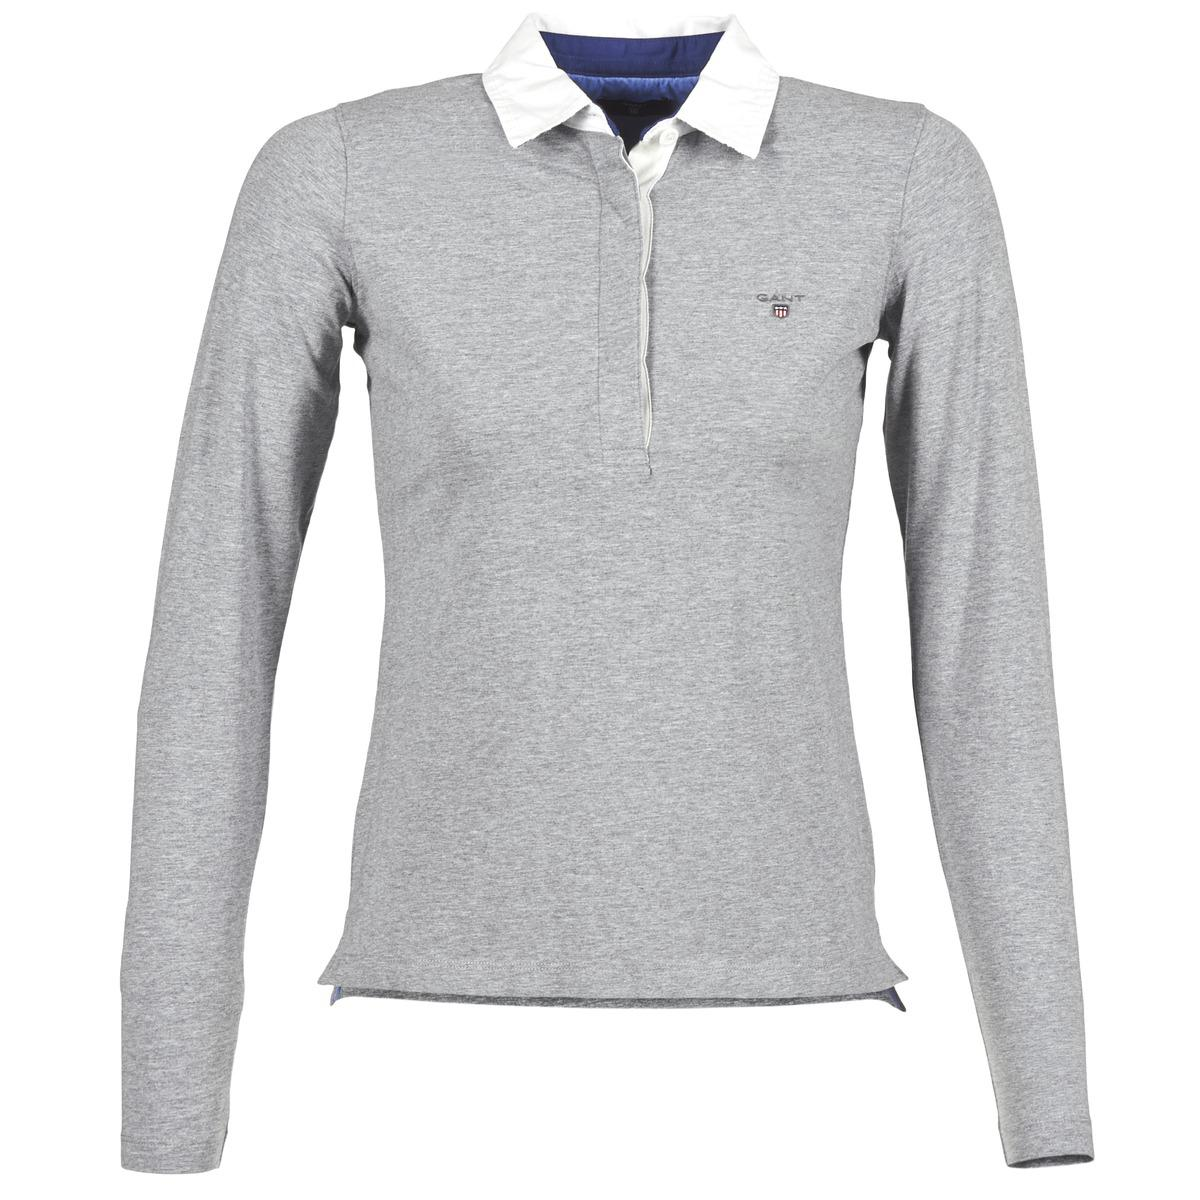 For Sale Cheap Price From China Free Shipping Outlet Store Womens Jersey Rugger Polo Shirt GANT Cheap In China Free Shipping Nicekicks GT1Ys4sB9